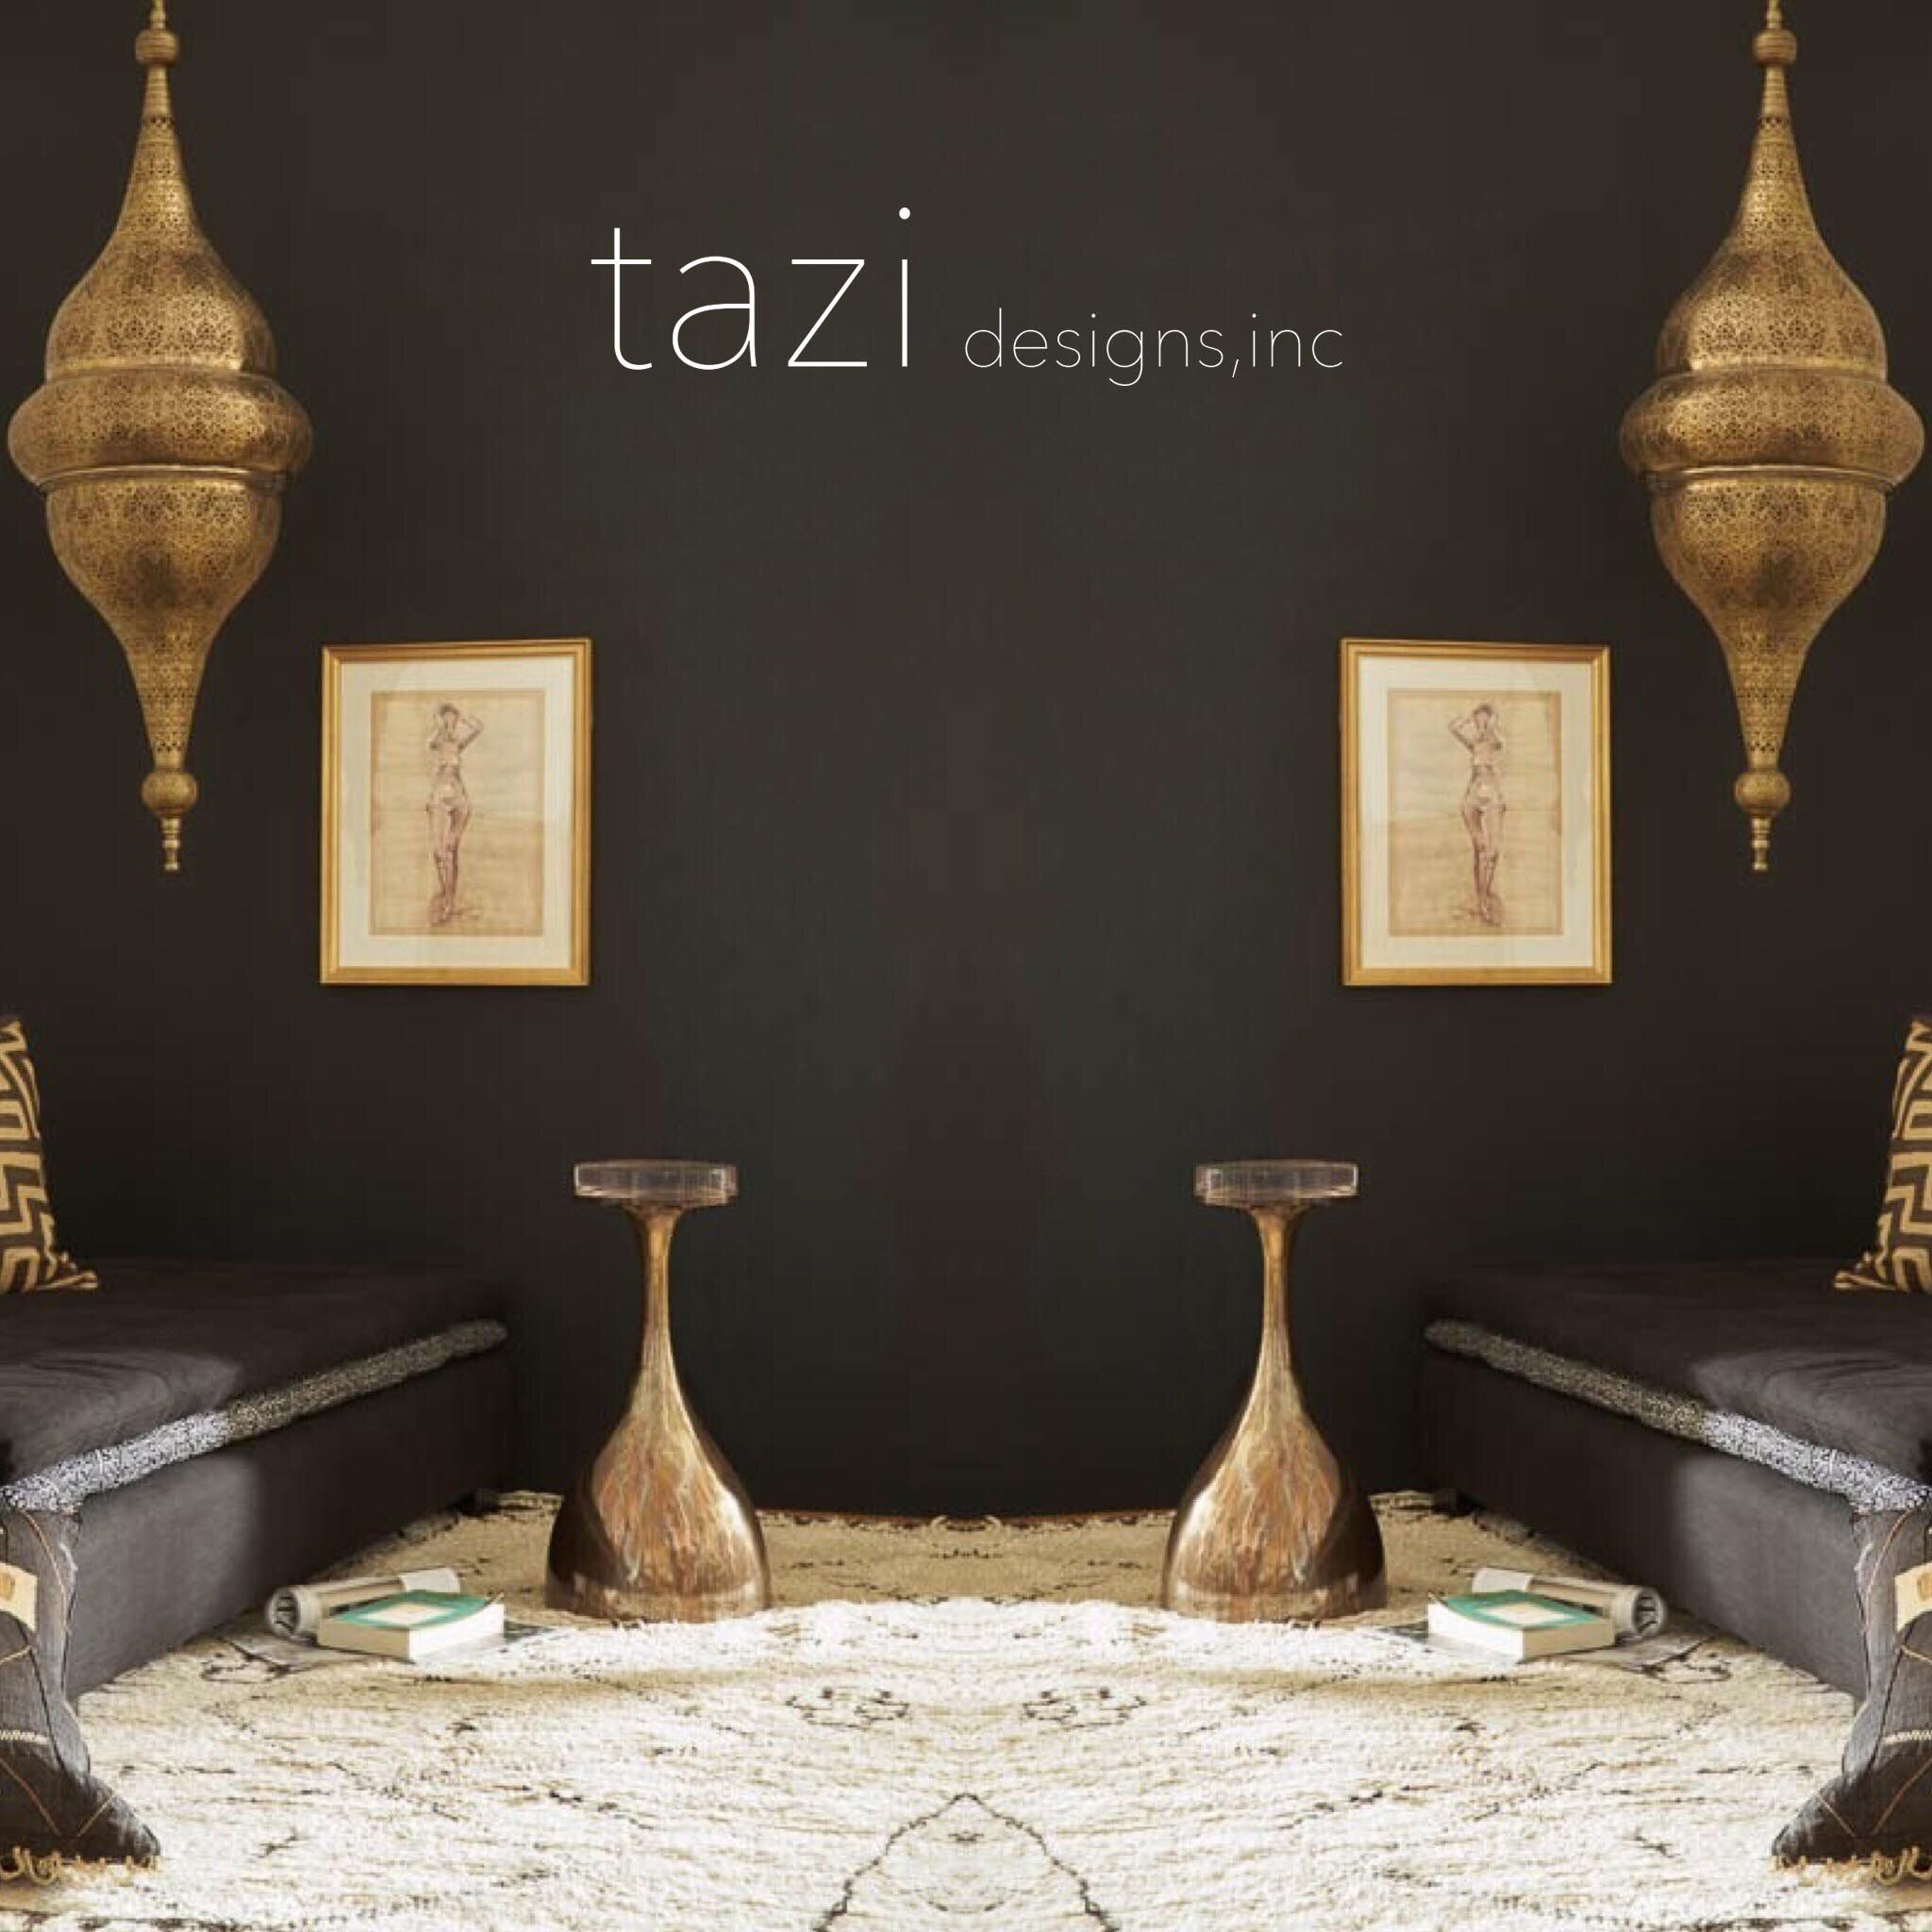 A Boutique In San Francisco Supplying Hand Crafted Lighting Exquisite Rugs And Home Decor